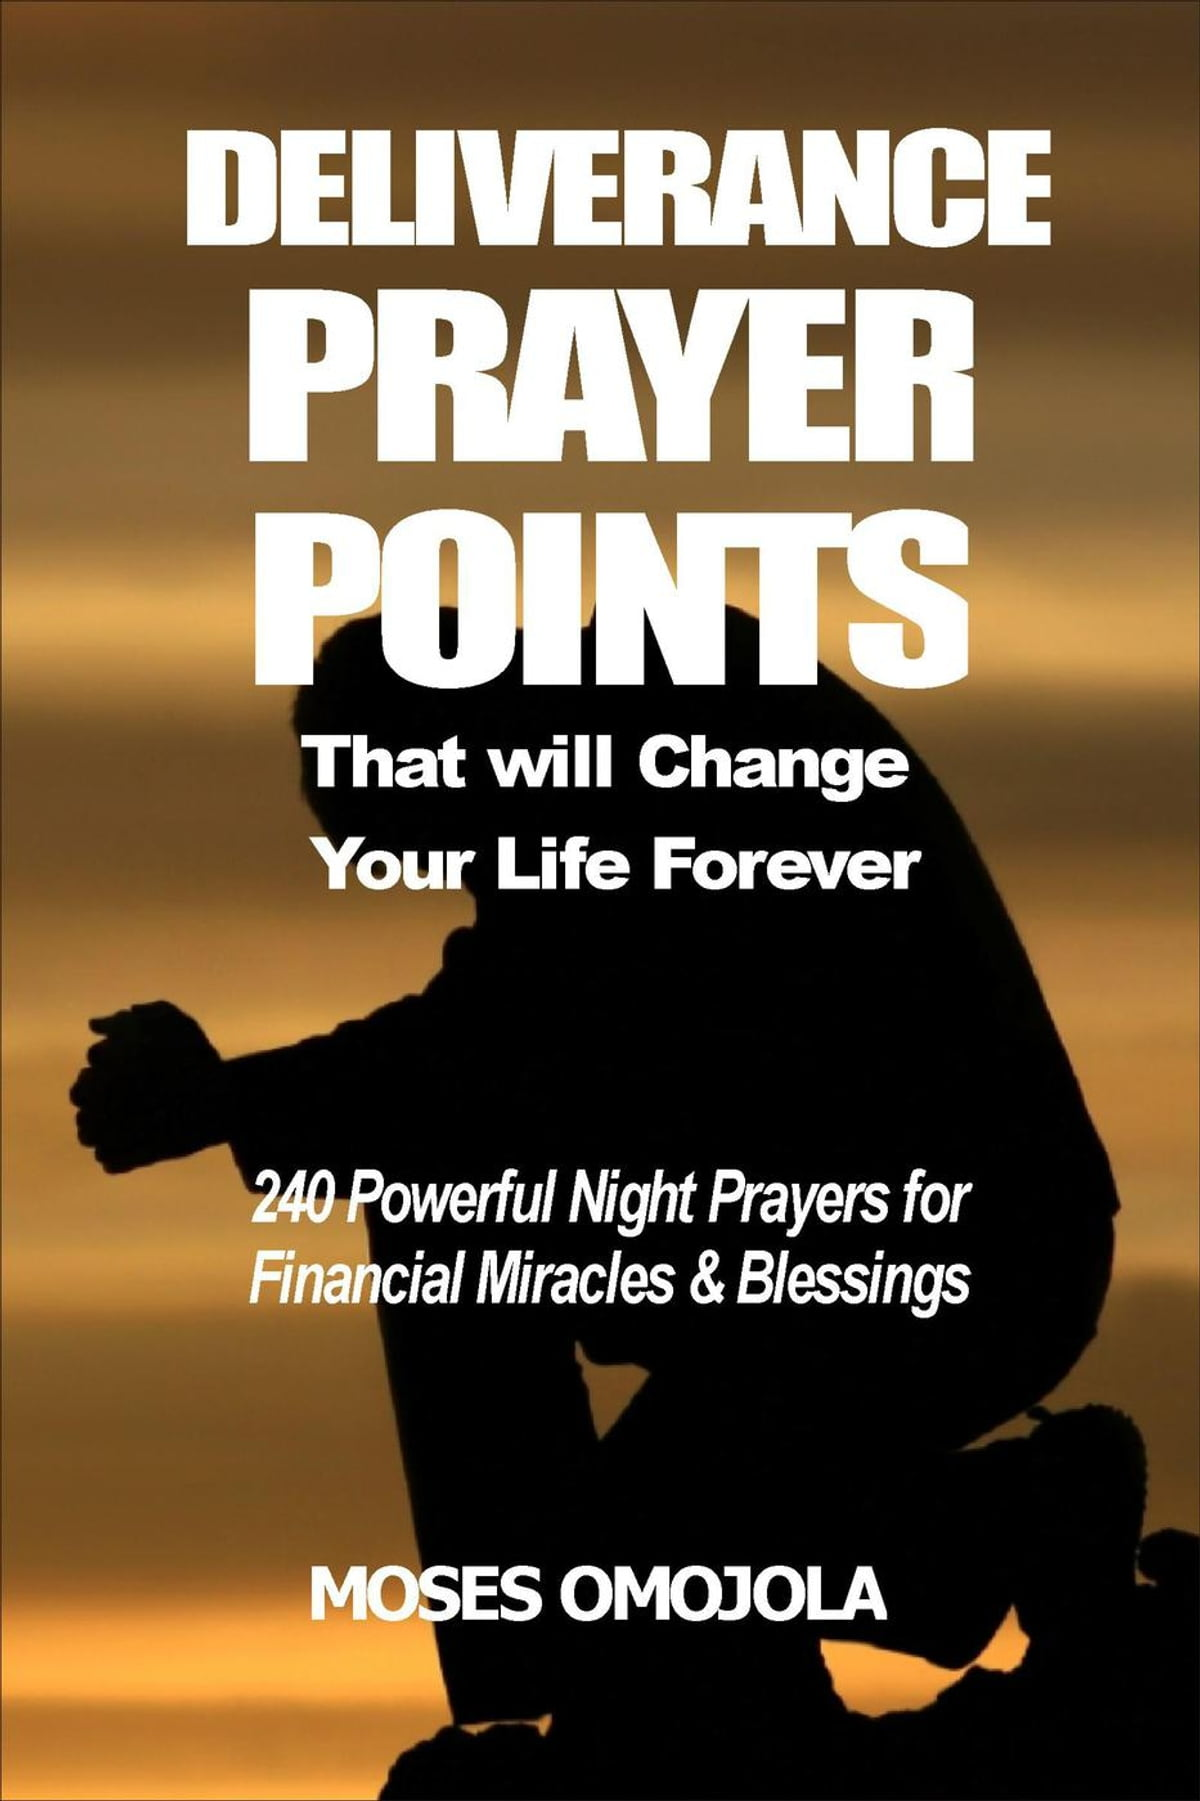 Deliverance Prayer Points That Will Change Your Life Forever: 240 Powerful  Night Prayers for Financial Miracles and Blessings ebook by Moses Omojola -